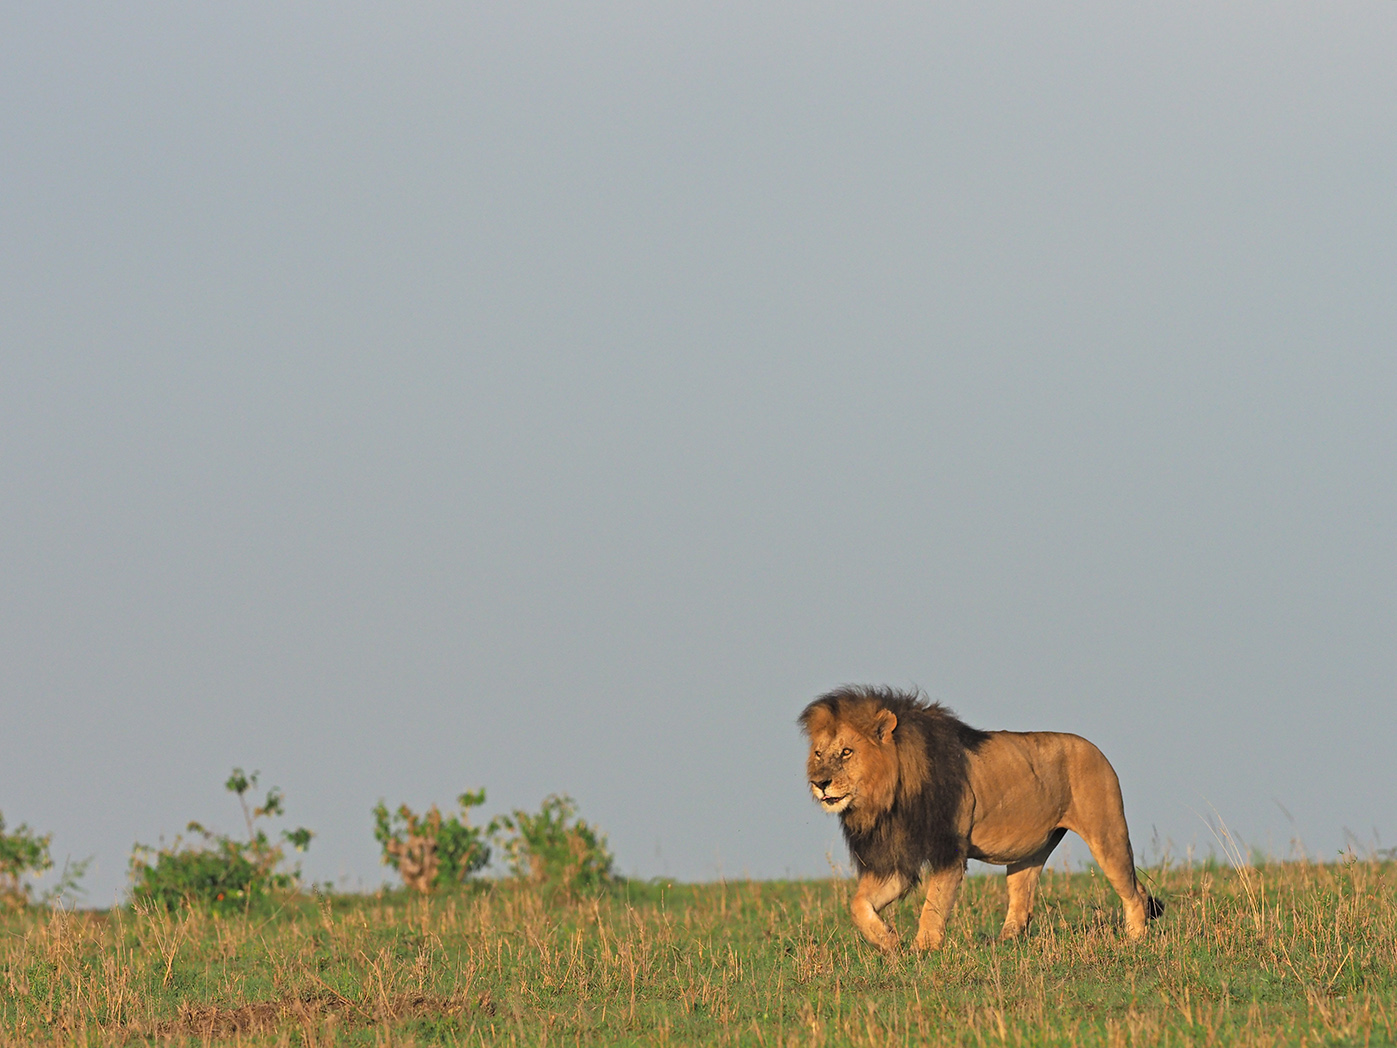 Lions in the wild by Ranjan